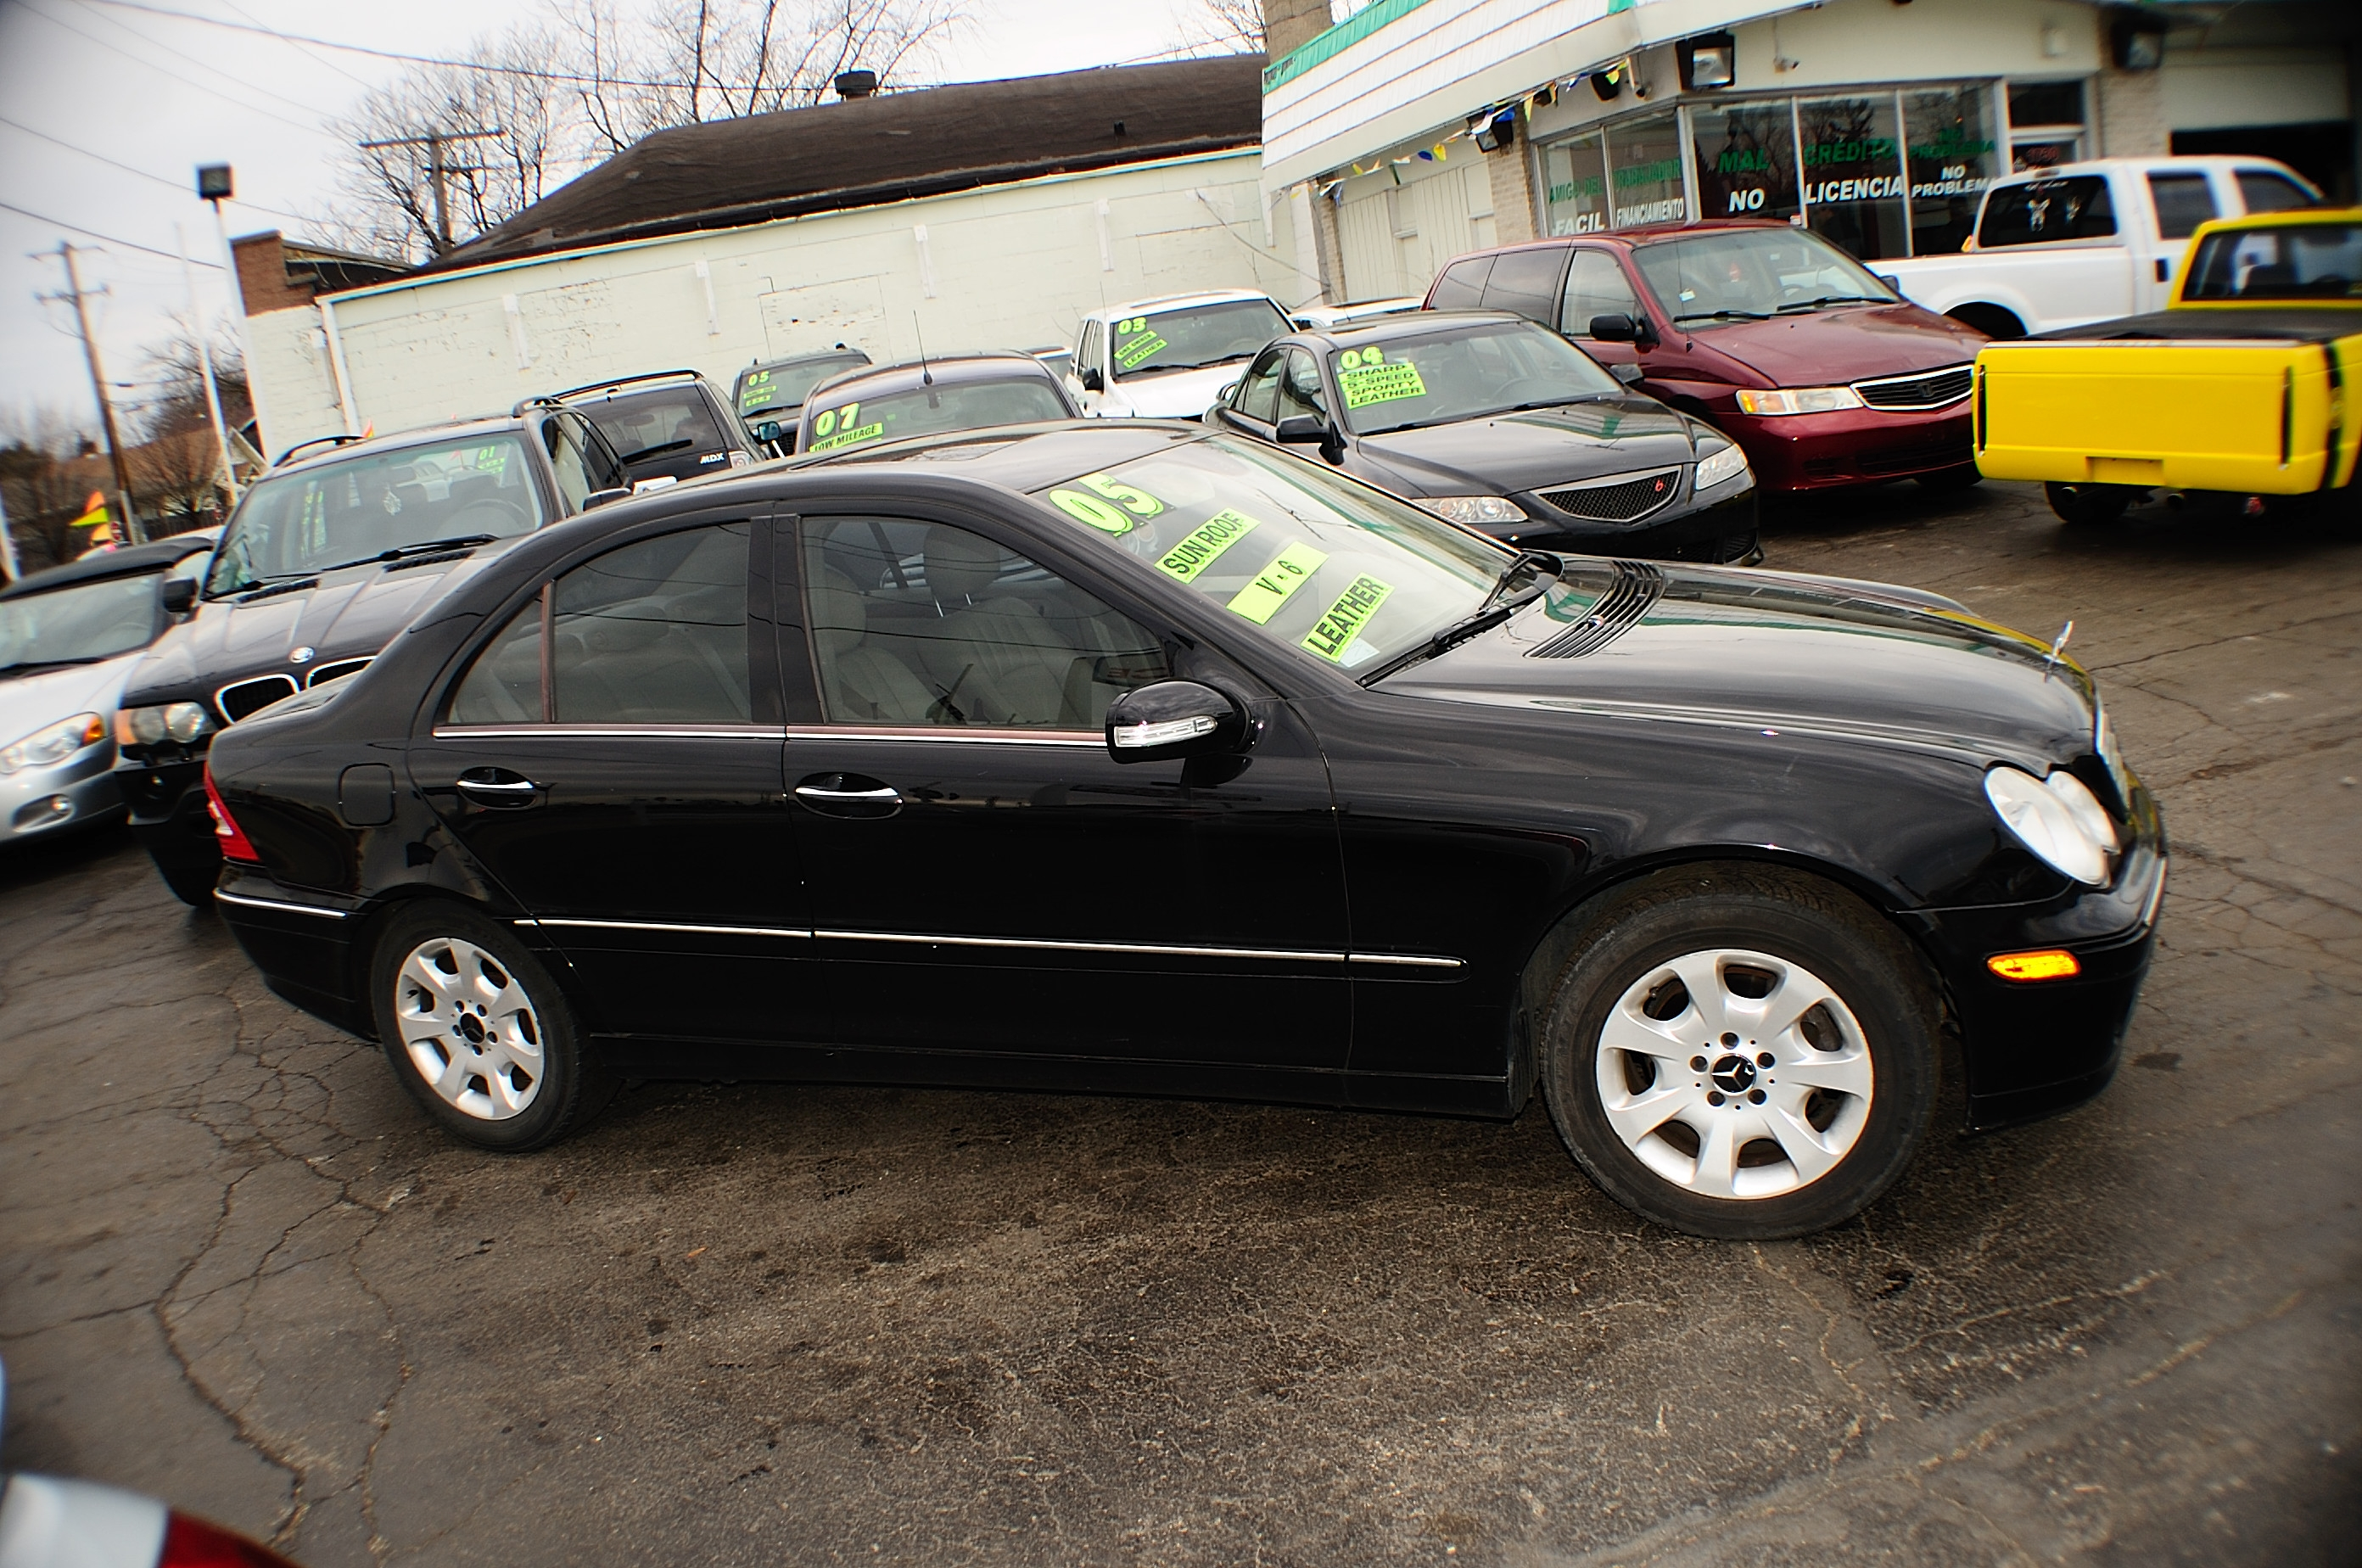 2005 Mercedes C240 Black 4matic 4Dr Sedan sale used car Bannockburn Barrington Beach Park